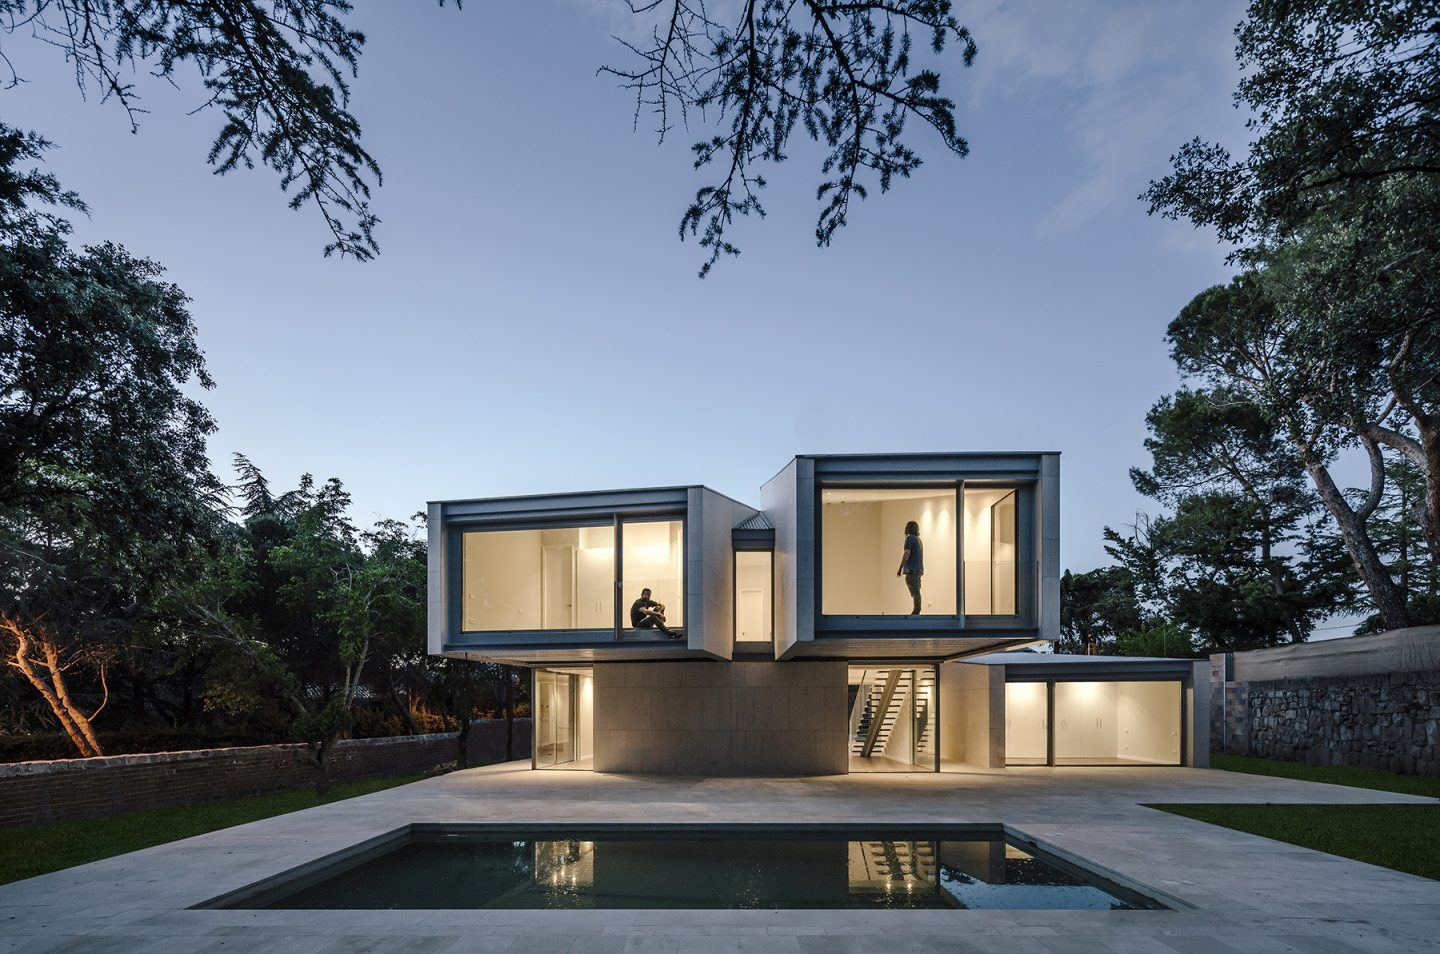 IGNANT-Design-ADesign-Award-Competition-M4-House-Zooco-Estudio-1